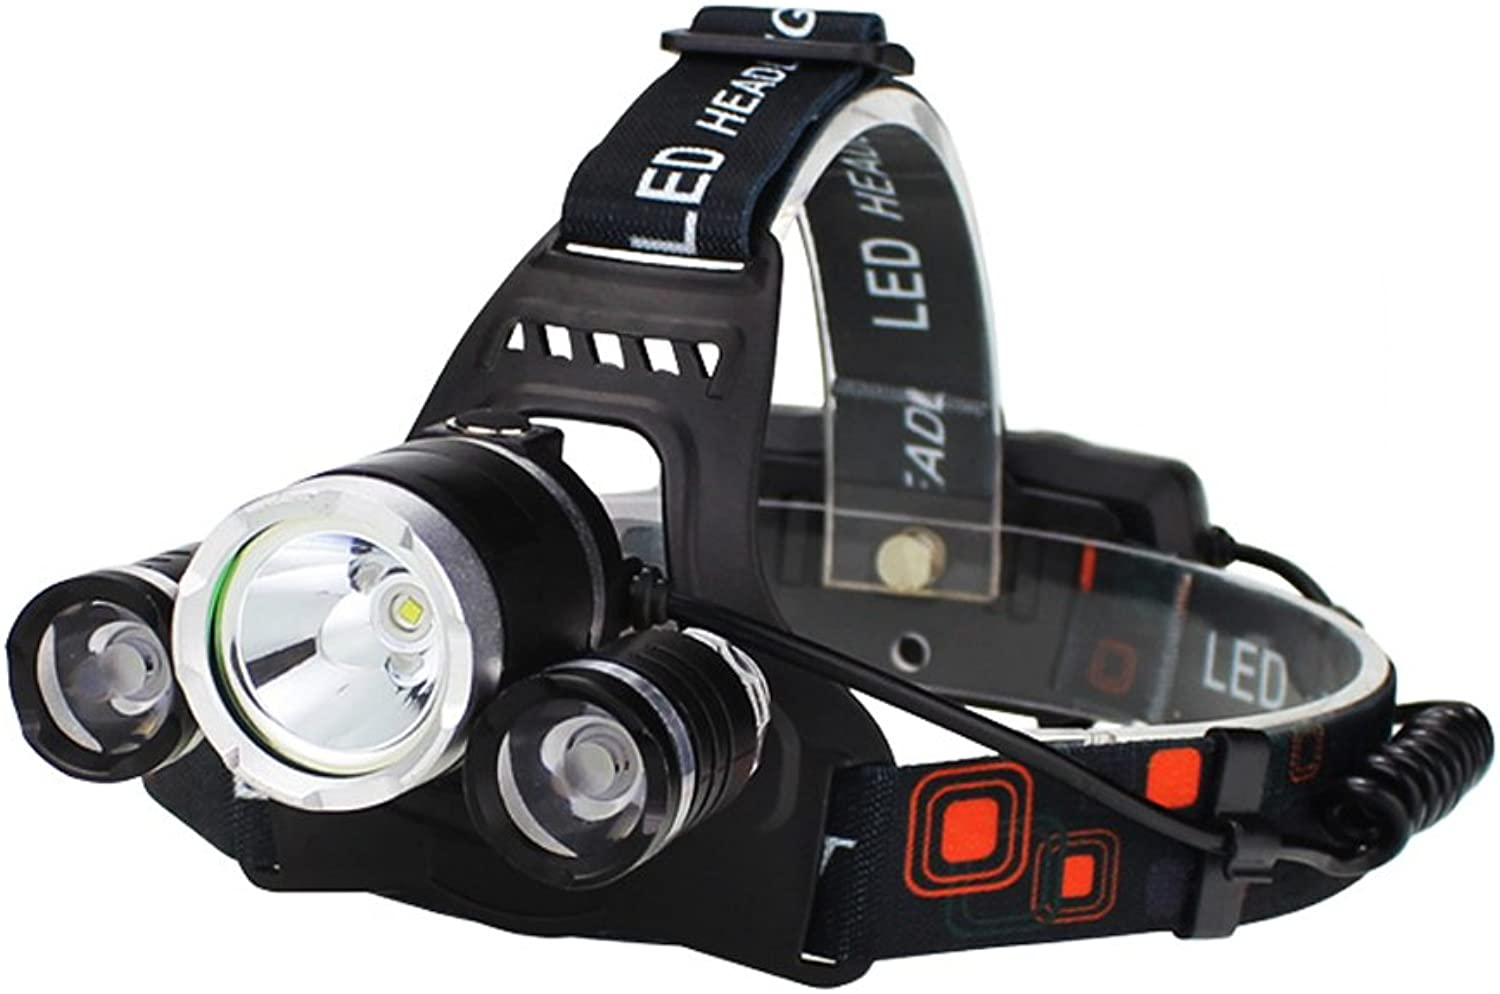 M-zmsdt Super Bright LED Head Torch, Rechargeable Waterproof Focus Headlight, Headlamp Flashlight Torch for Camping Running Walking Cycling Outdoors Light